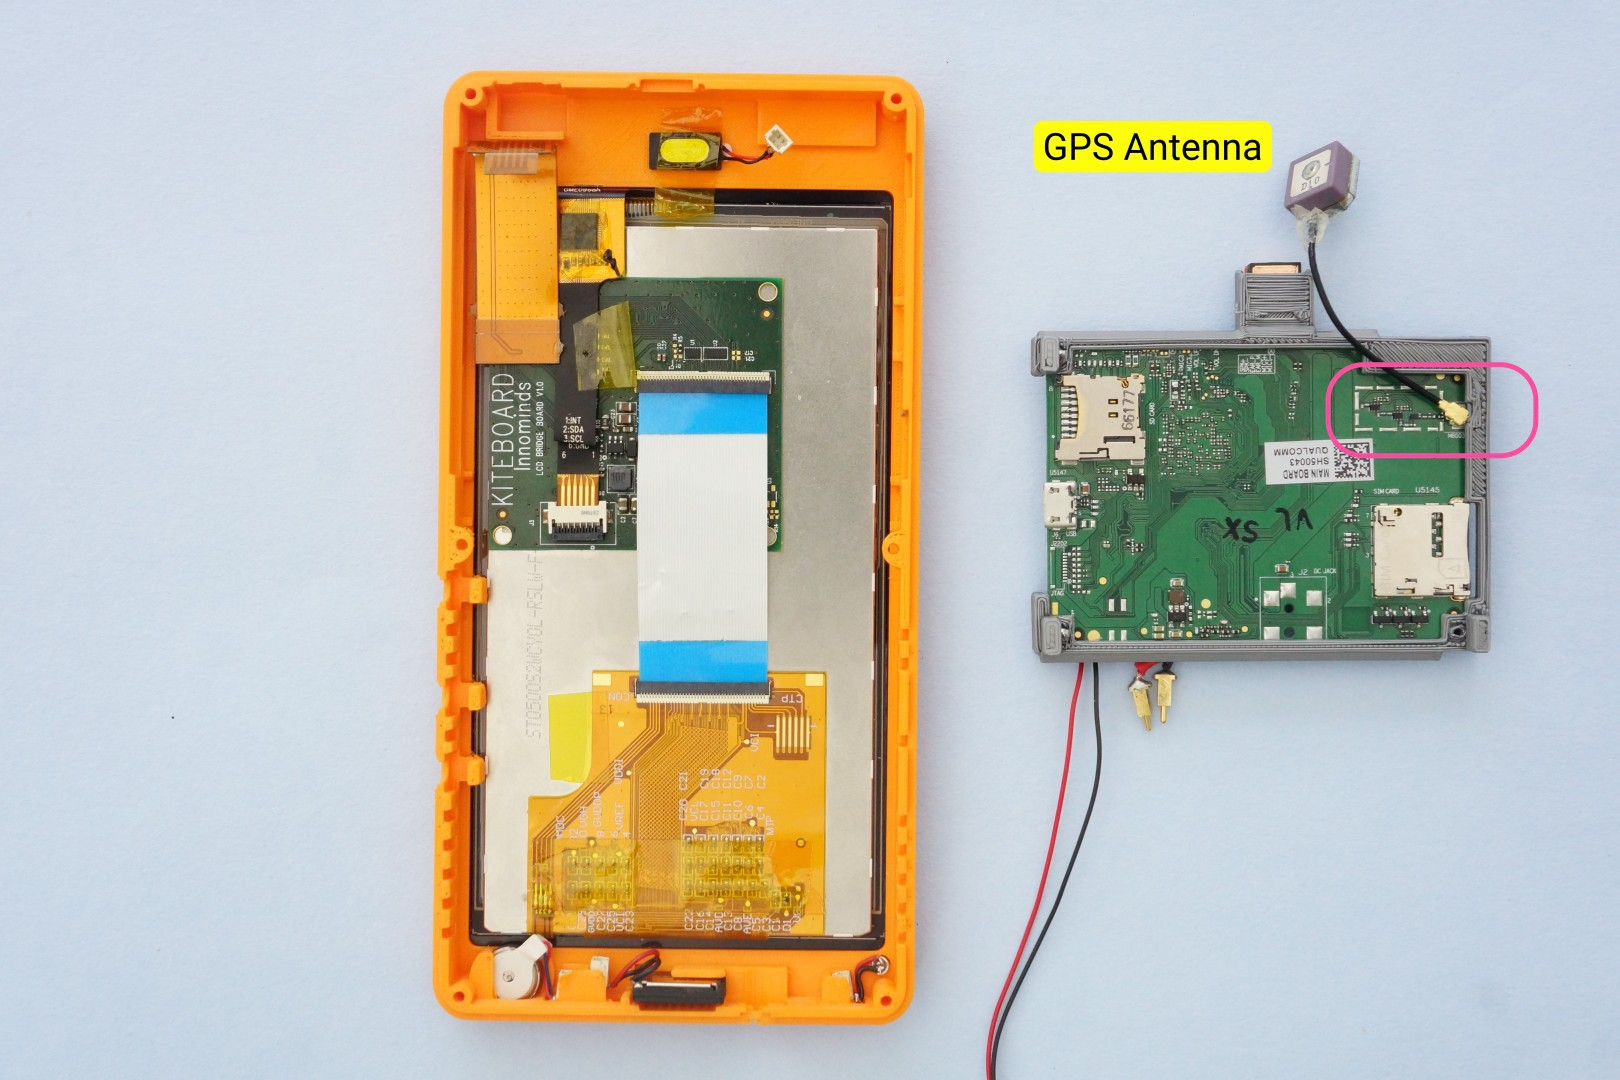 Building Poorna Your First Kitephone Details Maybe Thats Not A Bt Telephone Socket Wiring This Provides Mechanical Stability But Doesnt Impact The Antenna In Any Other Way Gps Is Connected To Ufl Connector On Bottom Side Of